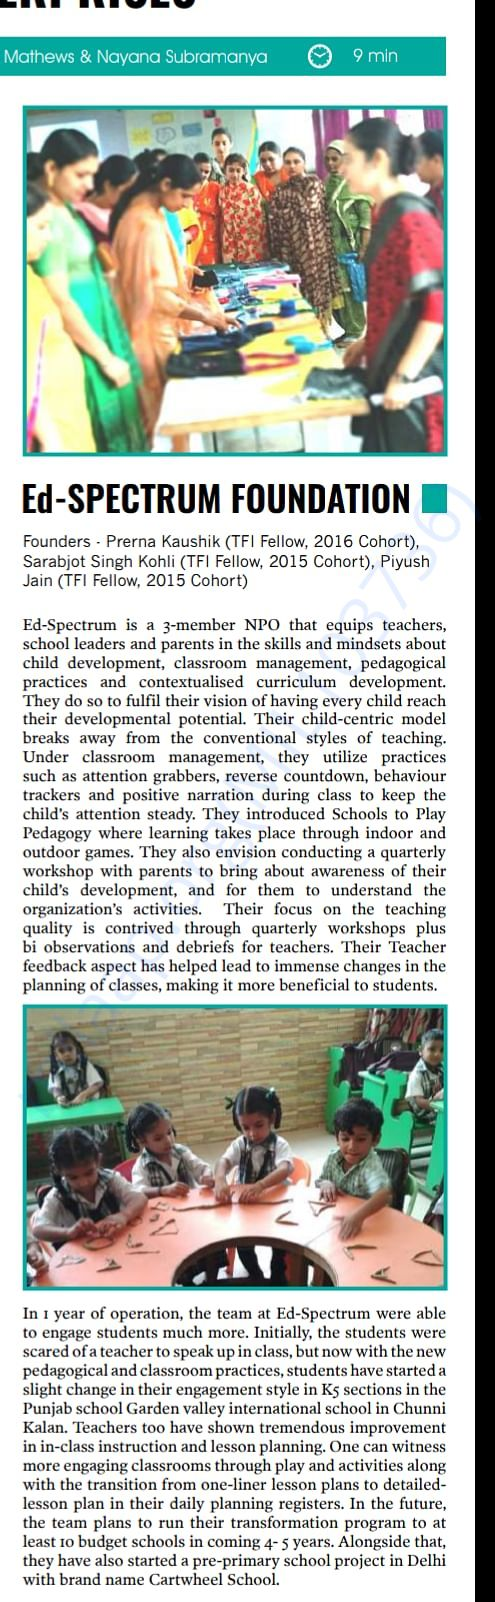 Coverage: The Optimist Citizen, dont forget to catch Cartwheel School